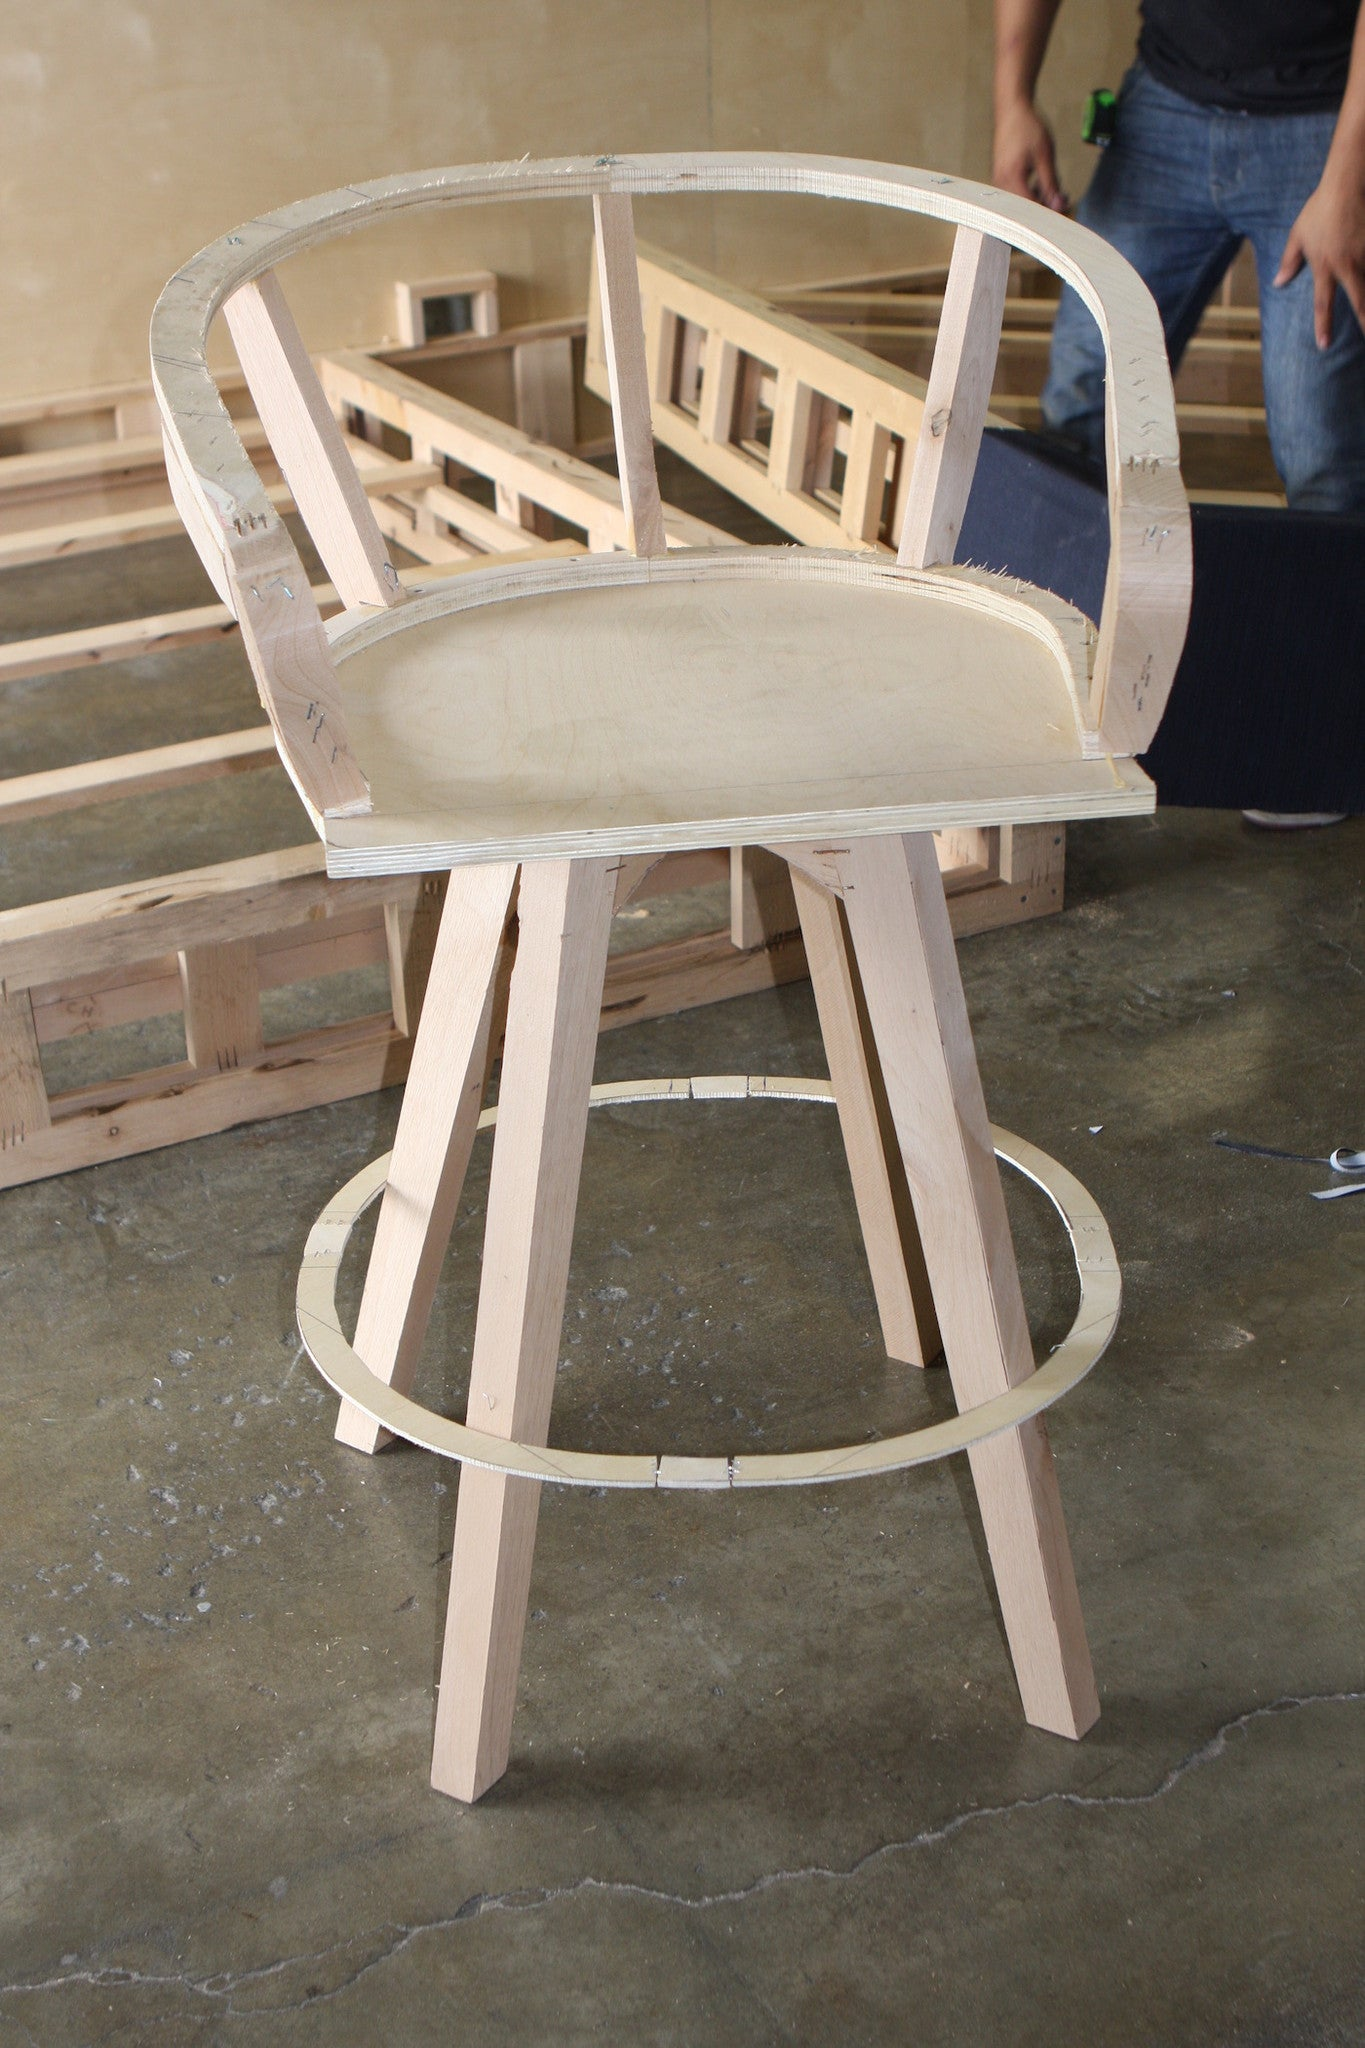 ... Designing and Building Custom Chairs ... & Designing and Building Custom Chairs u2013 Mortise u0026 Tenon